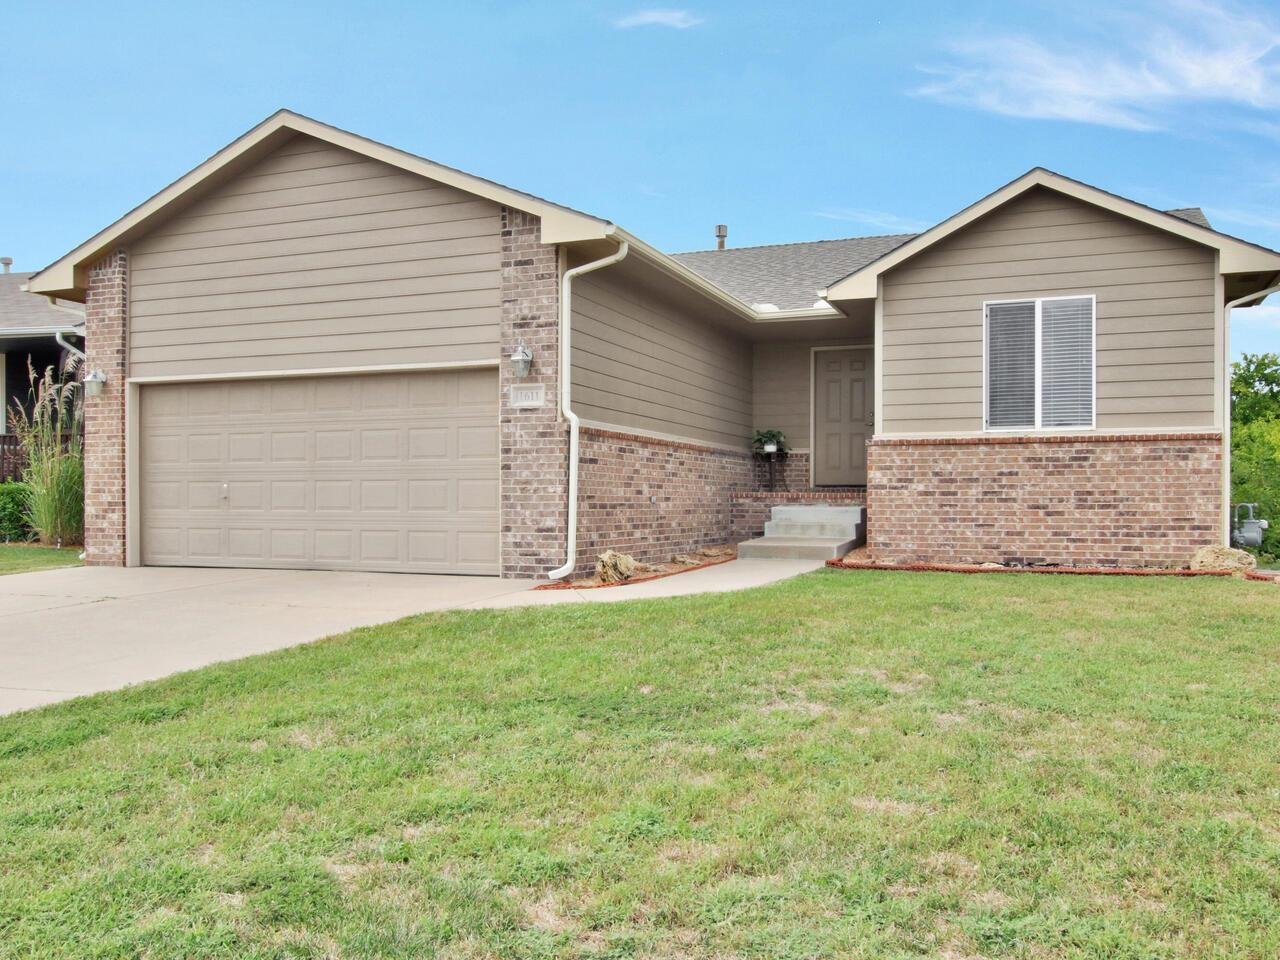 This well maintained home offers a true open floor plan with vaulted ceilings and lots of windows.